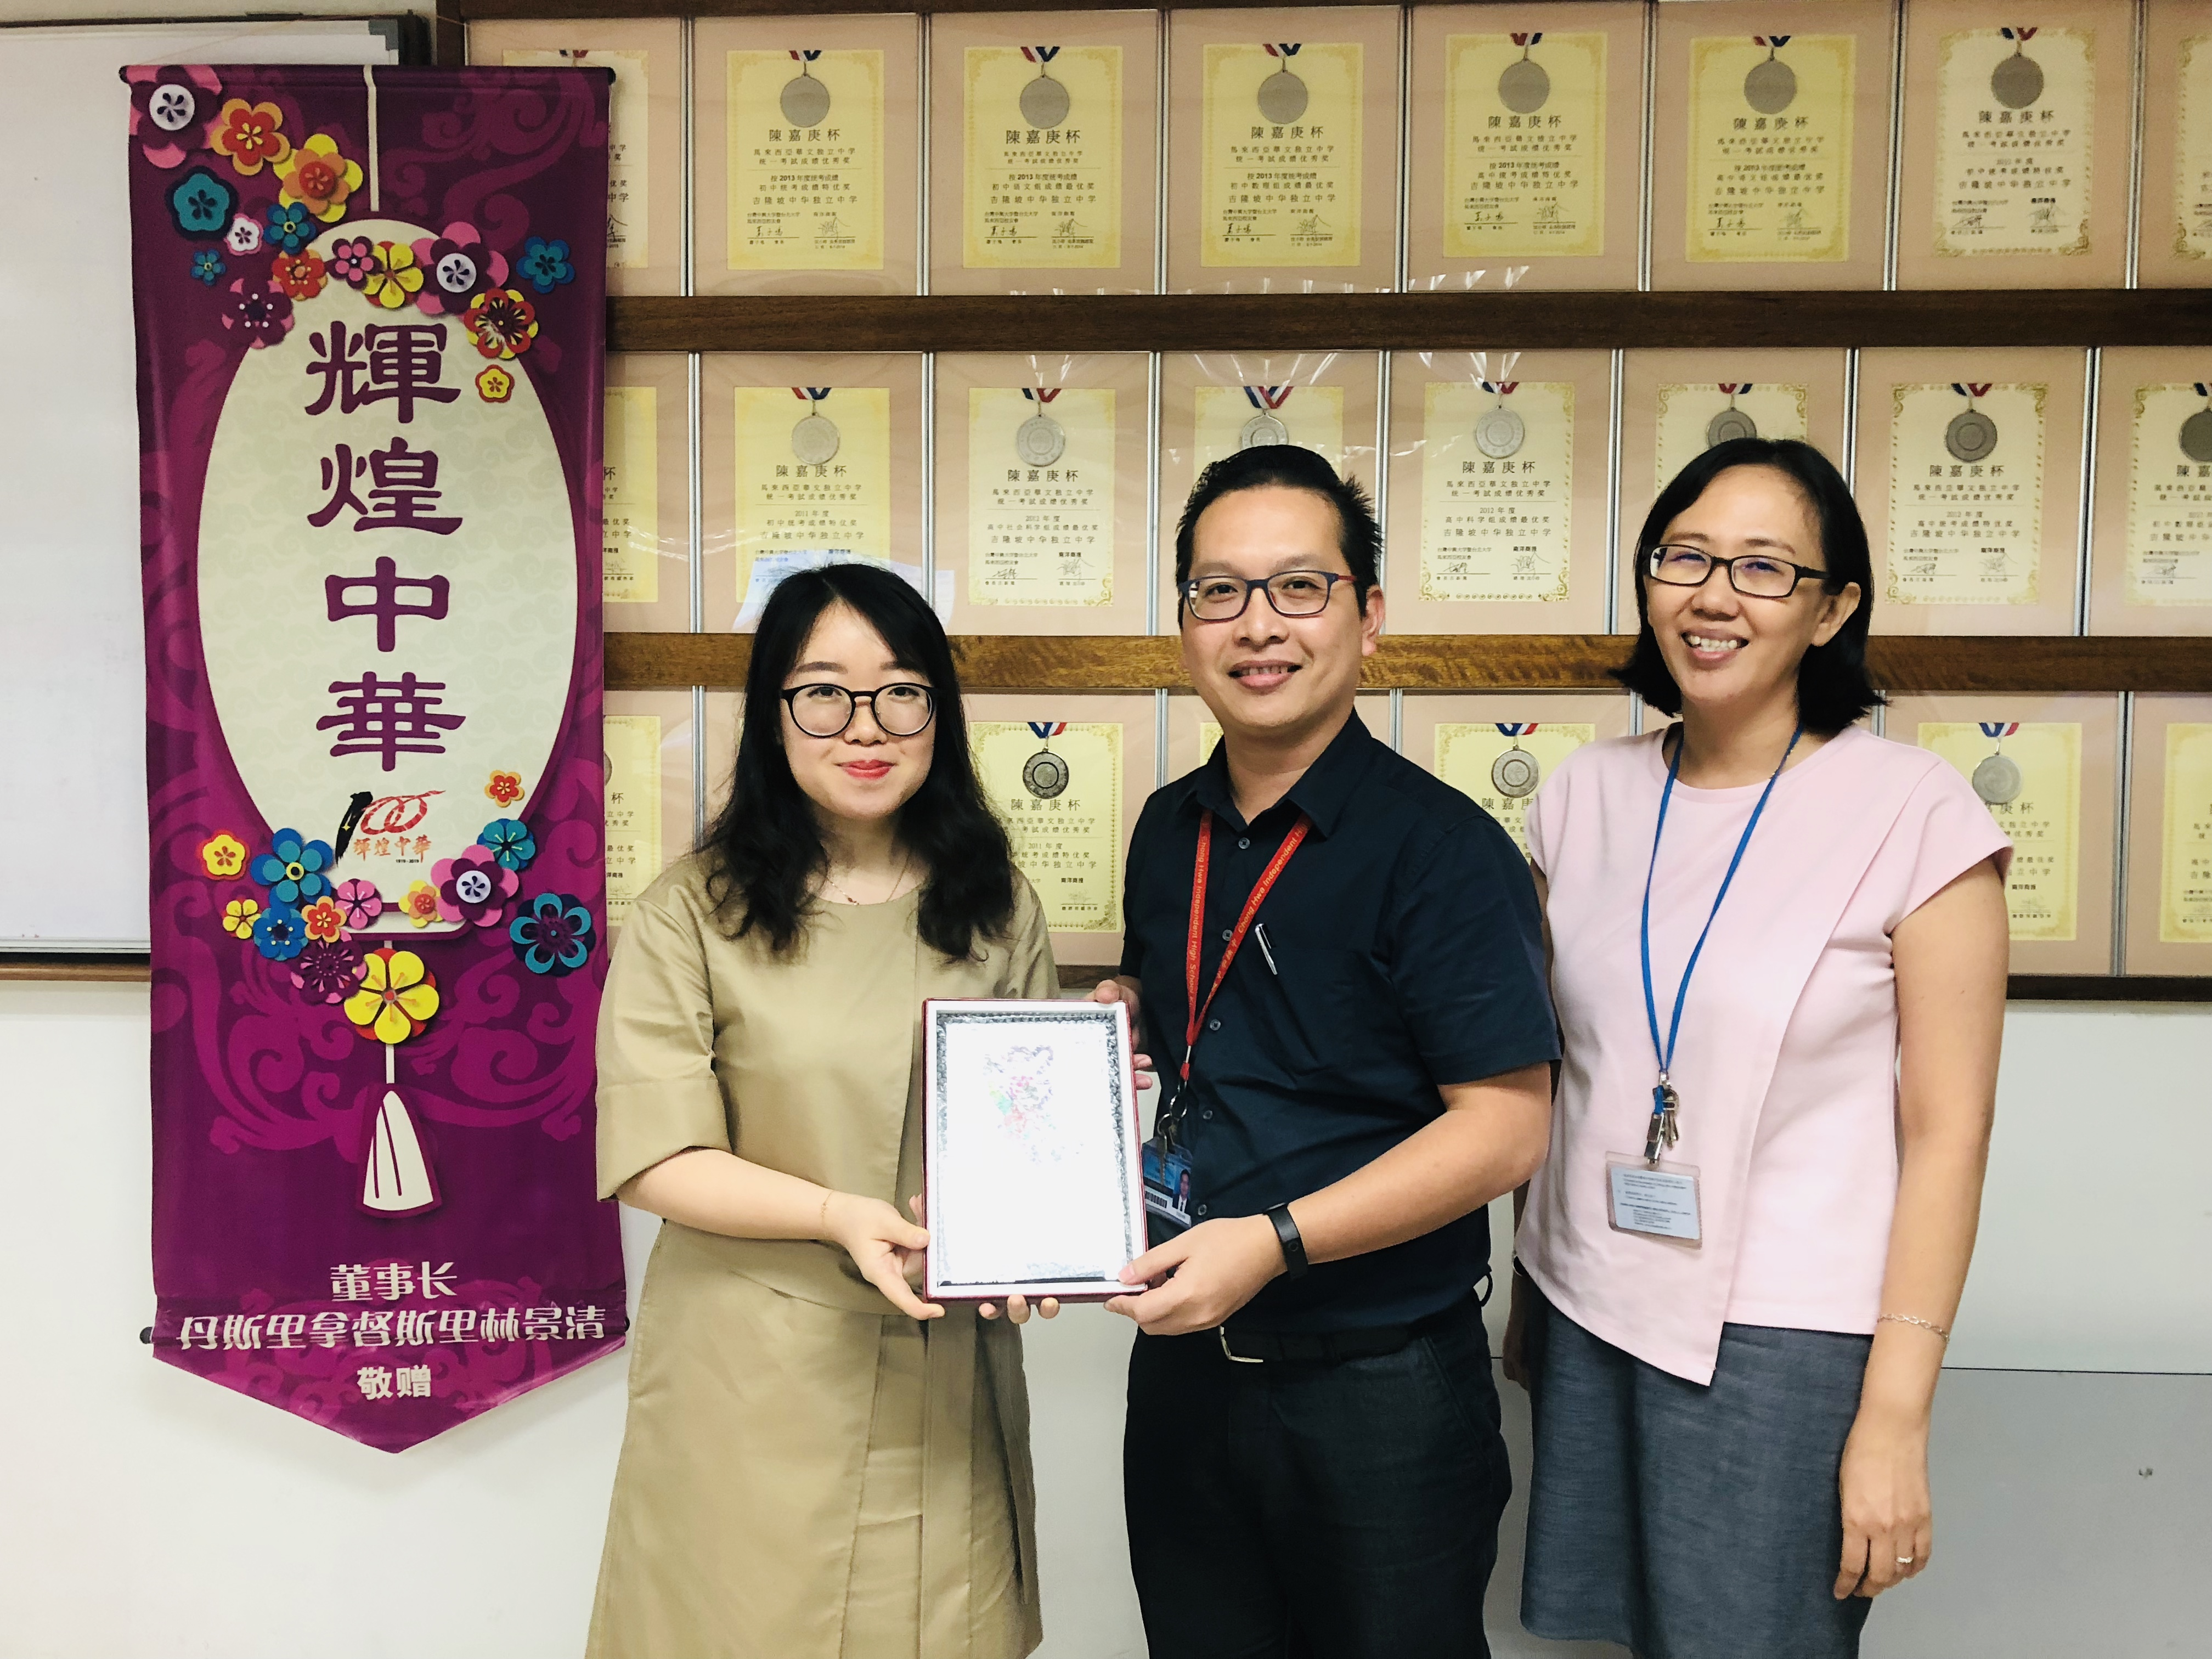 COOPERATION WITH MALAYSIA HIGH SCHOOL